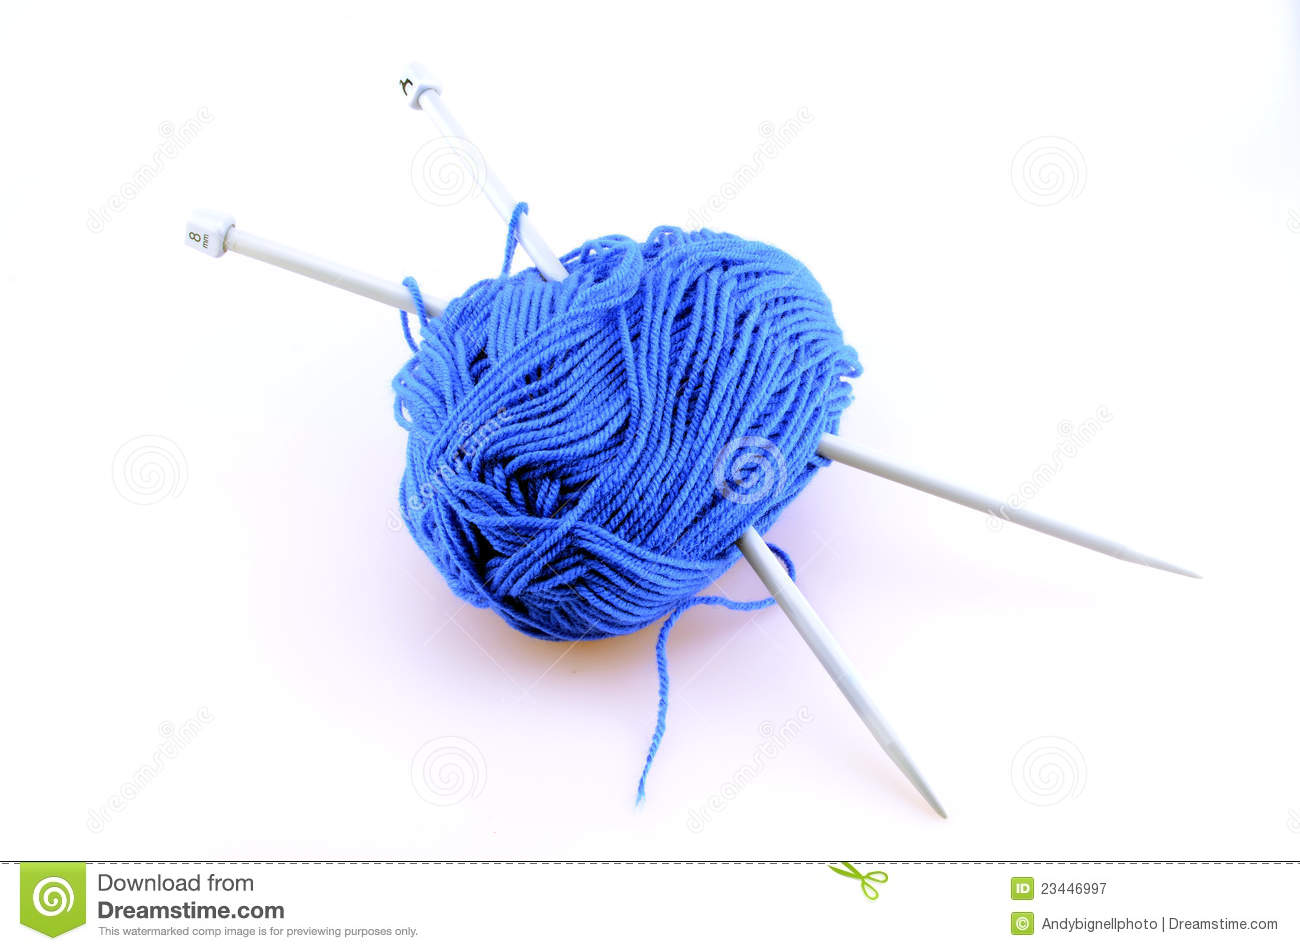 Knitting Needles And Wool : Knitting needles and wool royalty free stock photography